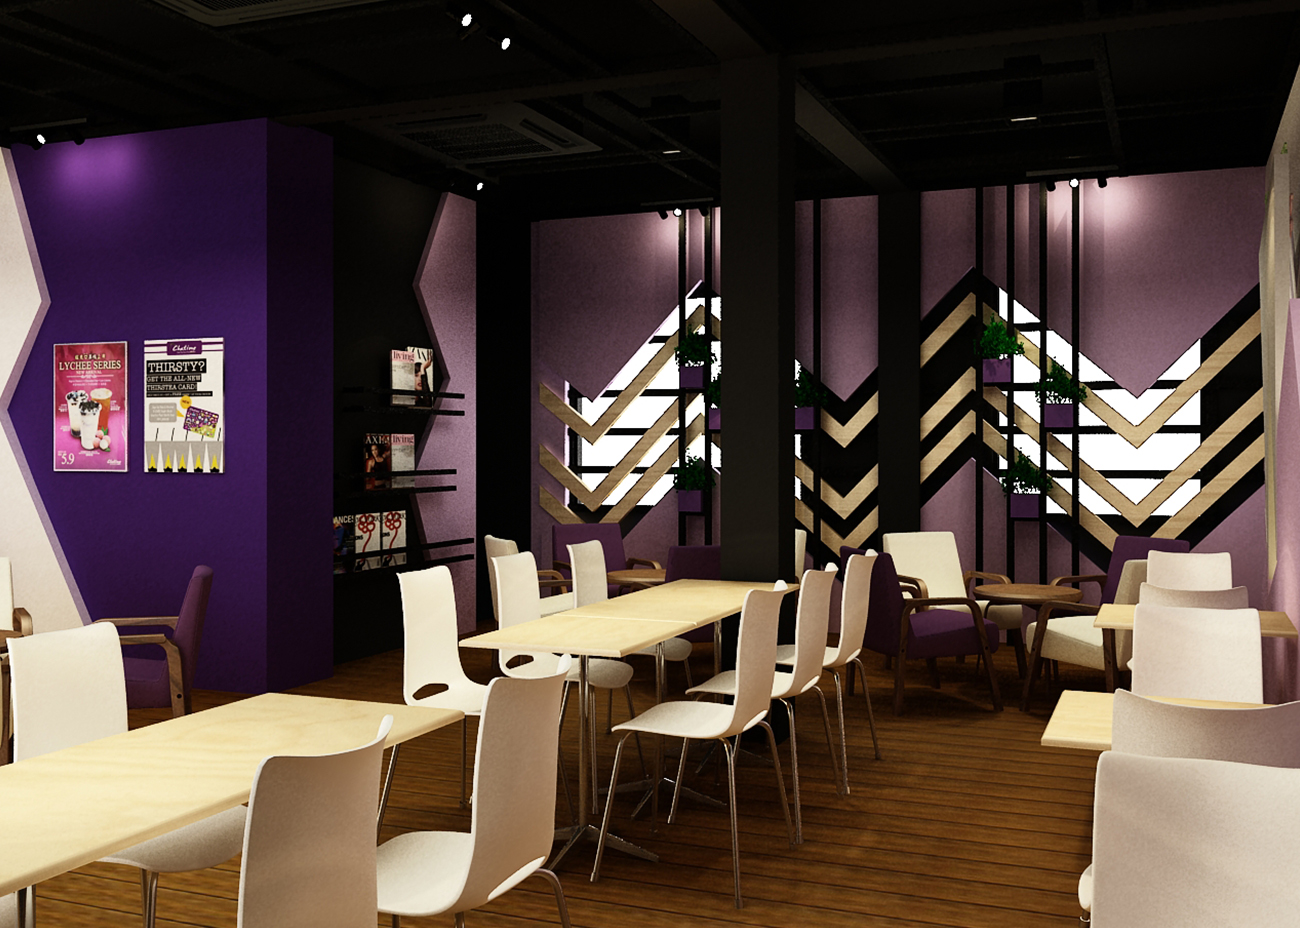 Commercial Projects in year 2012 Chatime Raja Uda